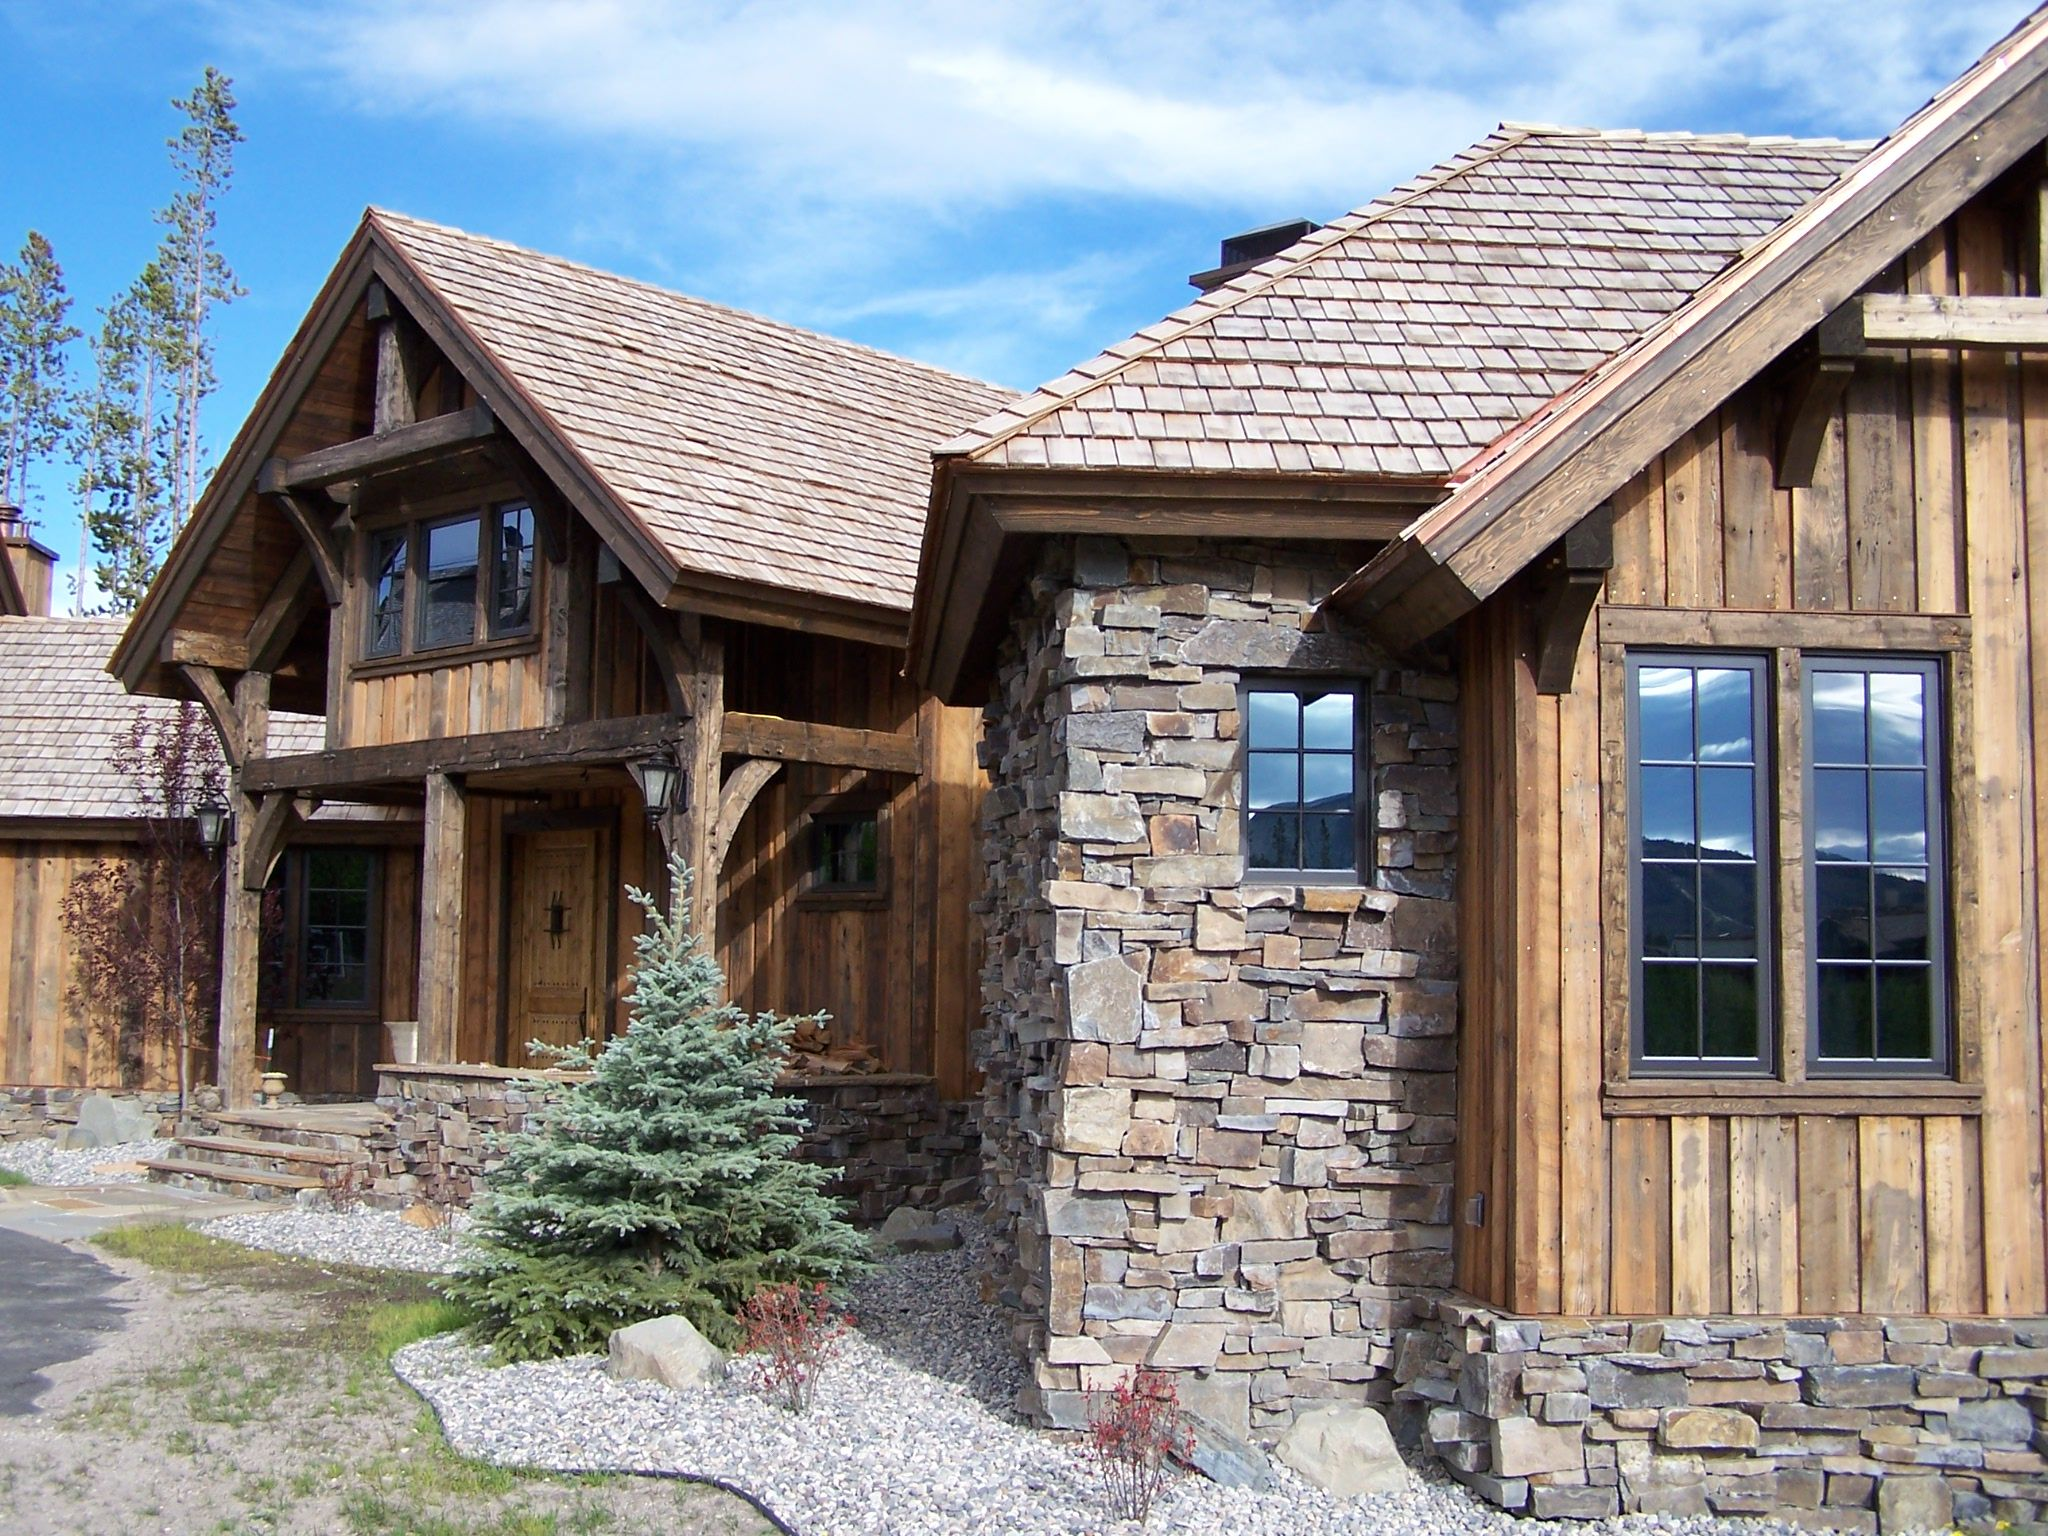 House design half cement - Like The Vertical Siding Rustic Feel Bavarian Stone Cabin Timber Frame Homes